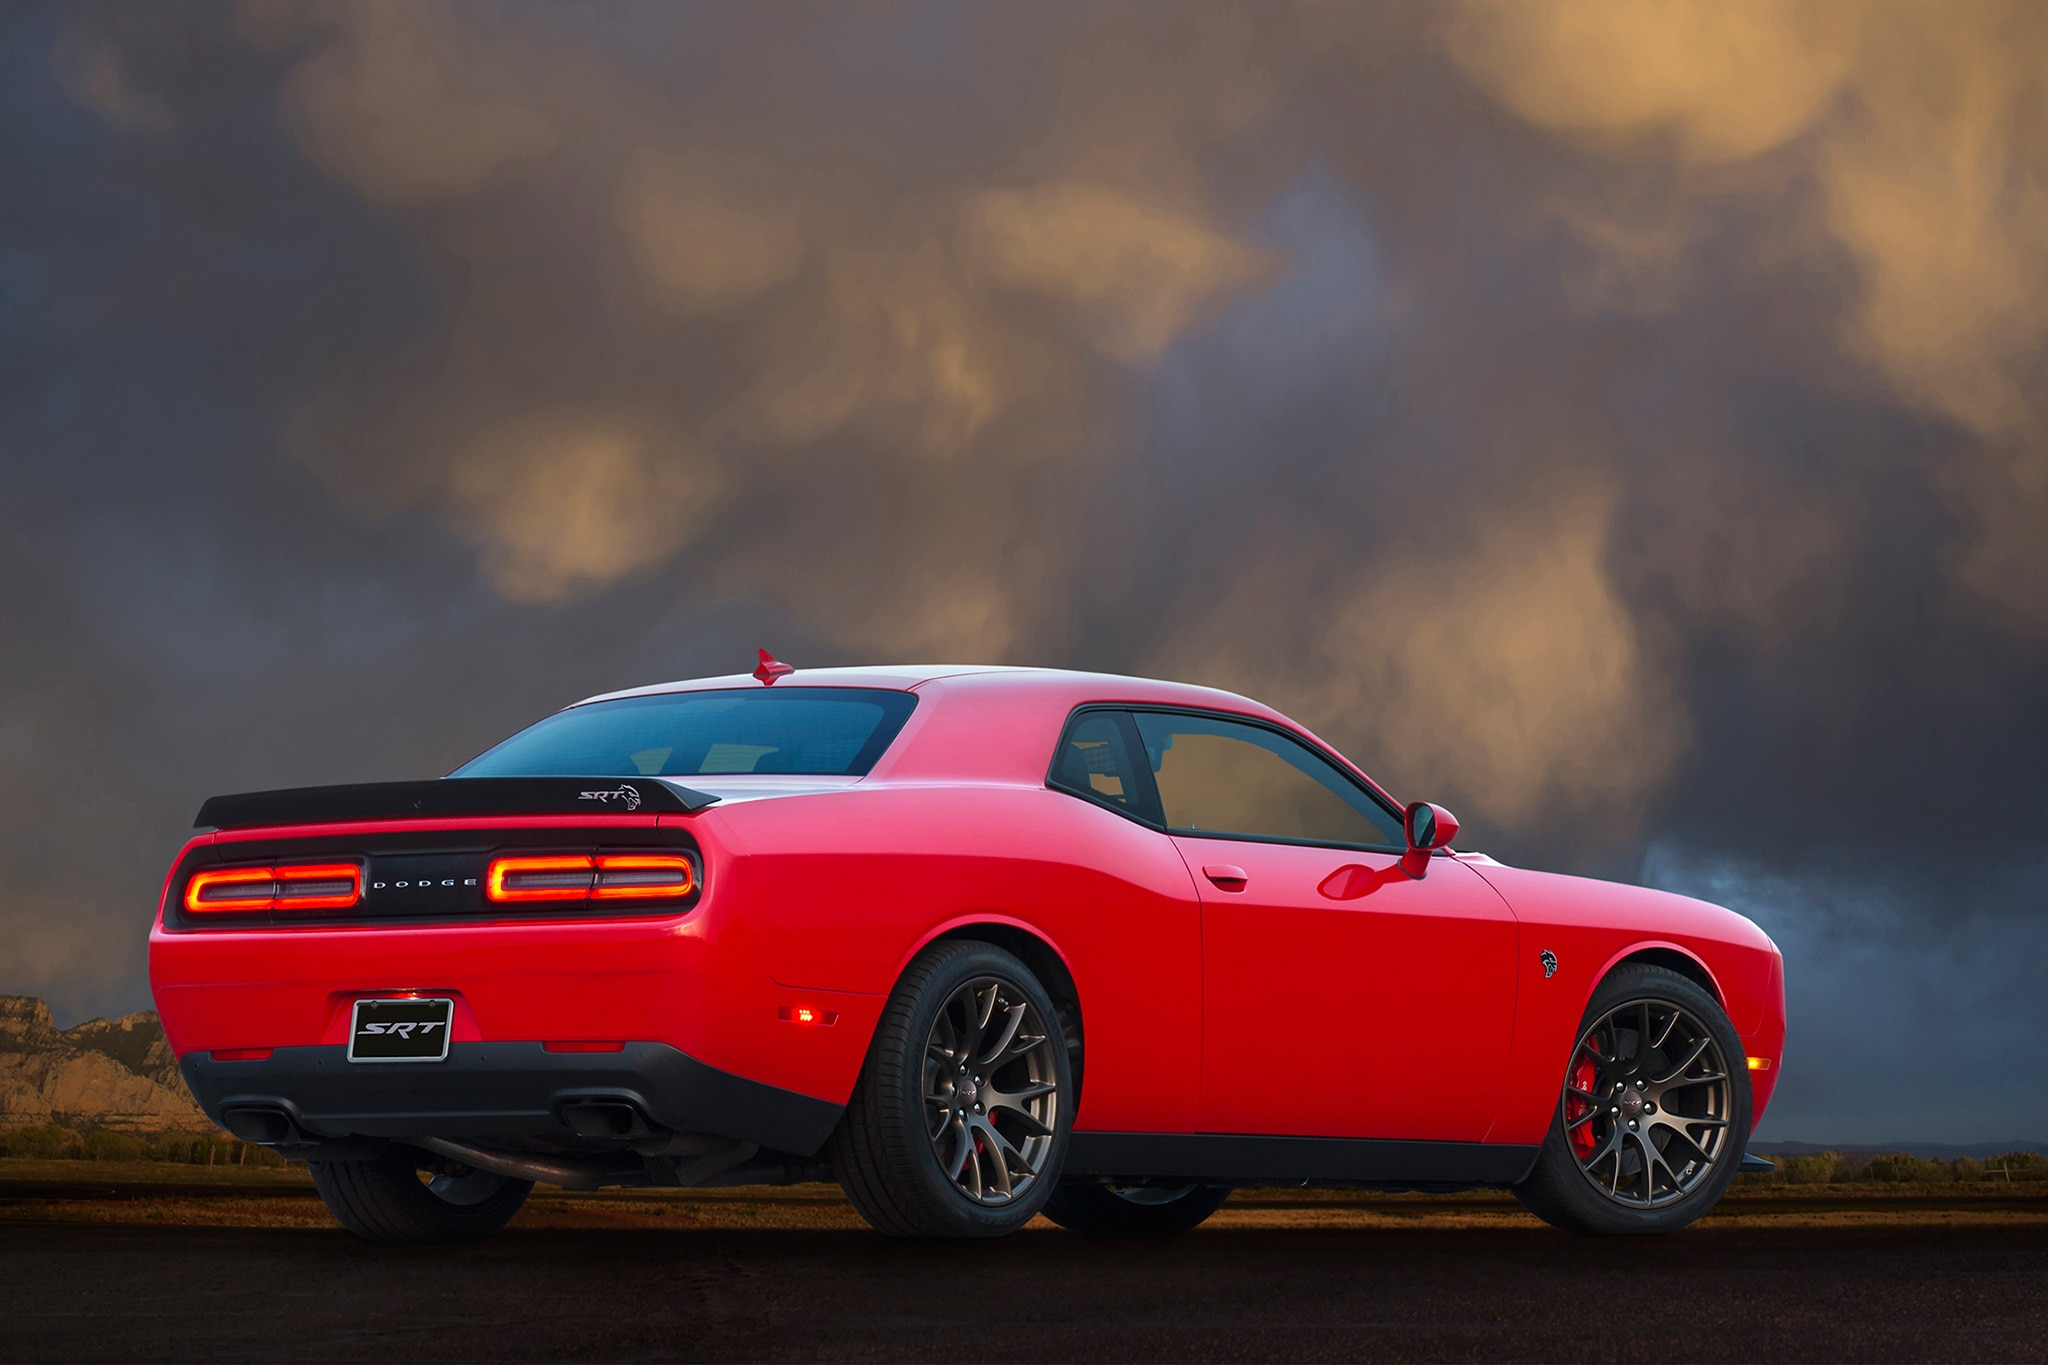 dodge unveils challenger stock car for nascar nationwide series. Black Bedroom Furniture Sets. Home Design Ideas